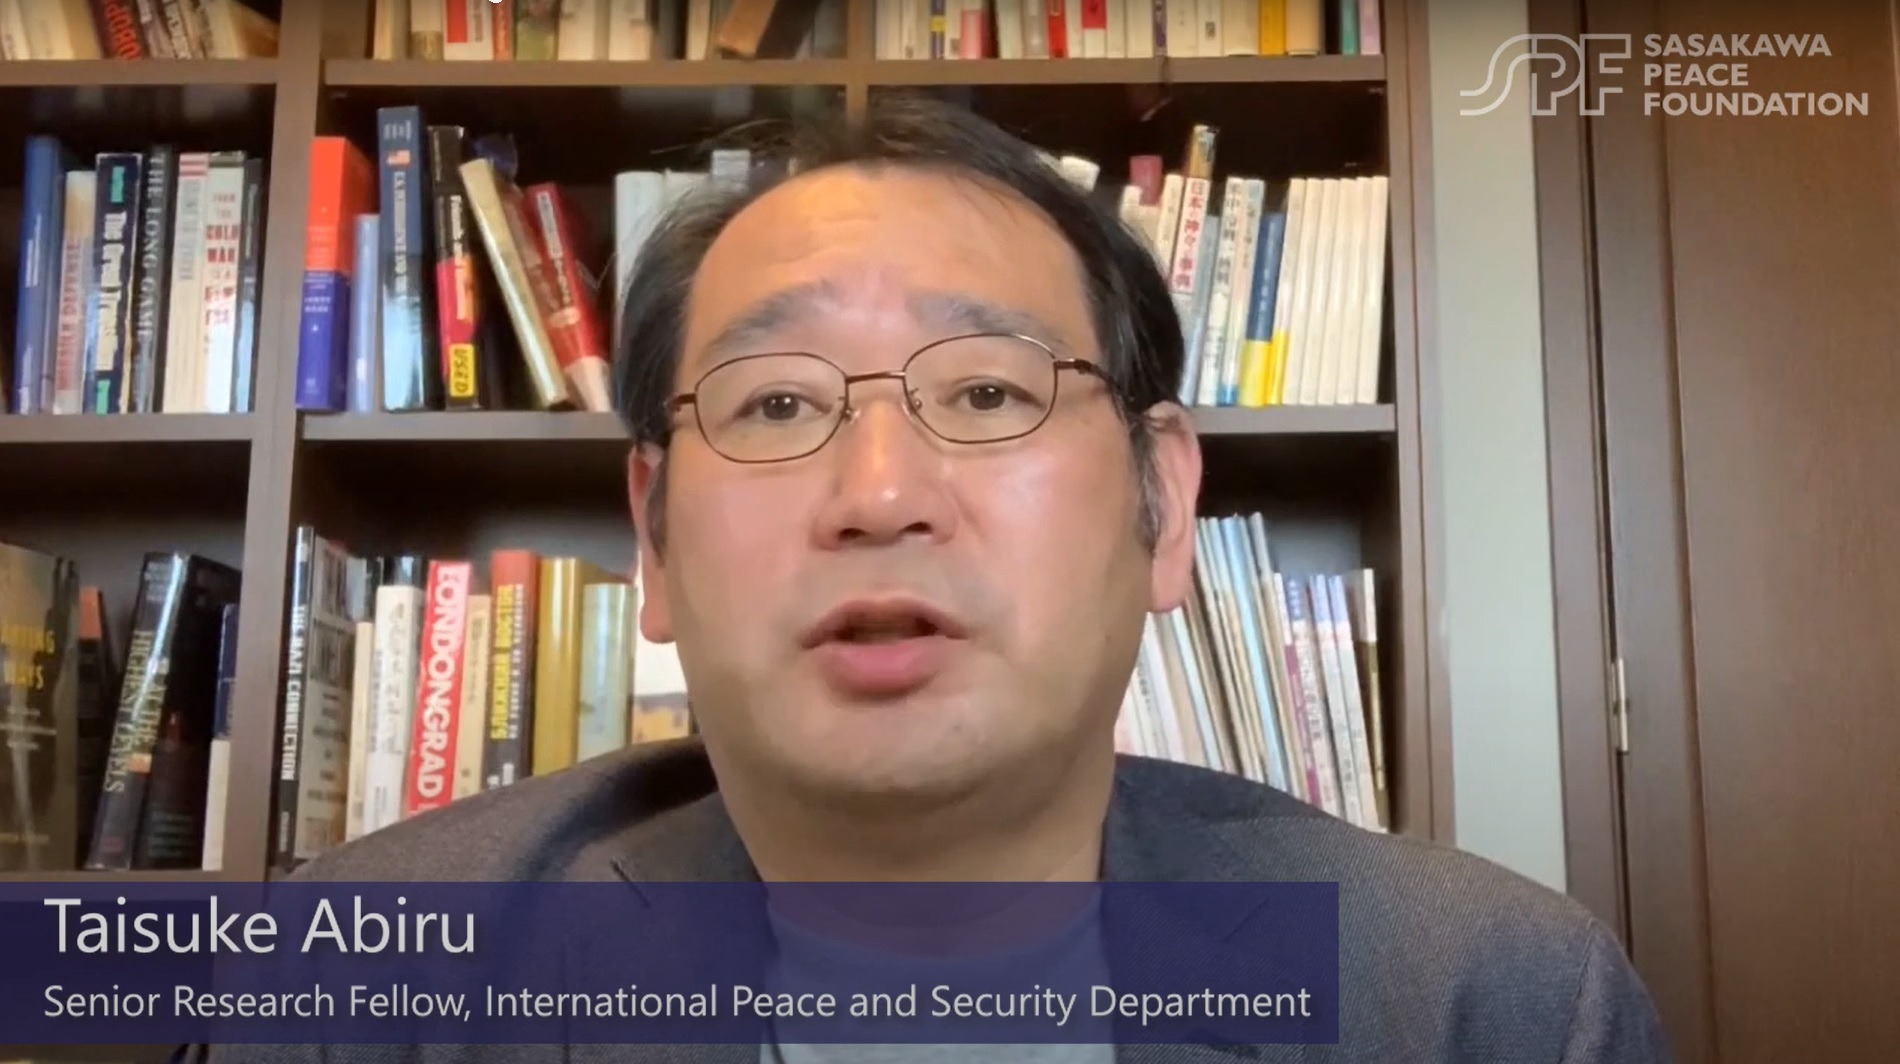 Russian Foreign Policy and COVID-19: Interview with SPF Senior Research Fellow Taisuke Abiru